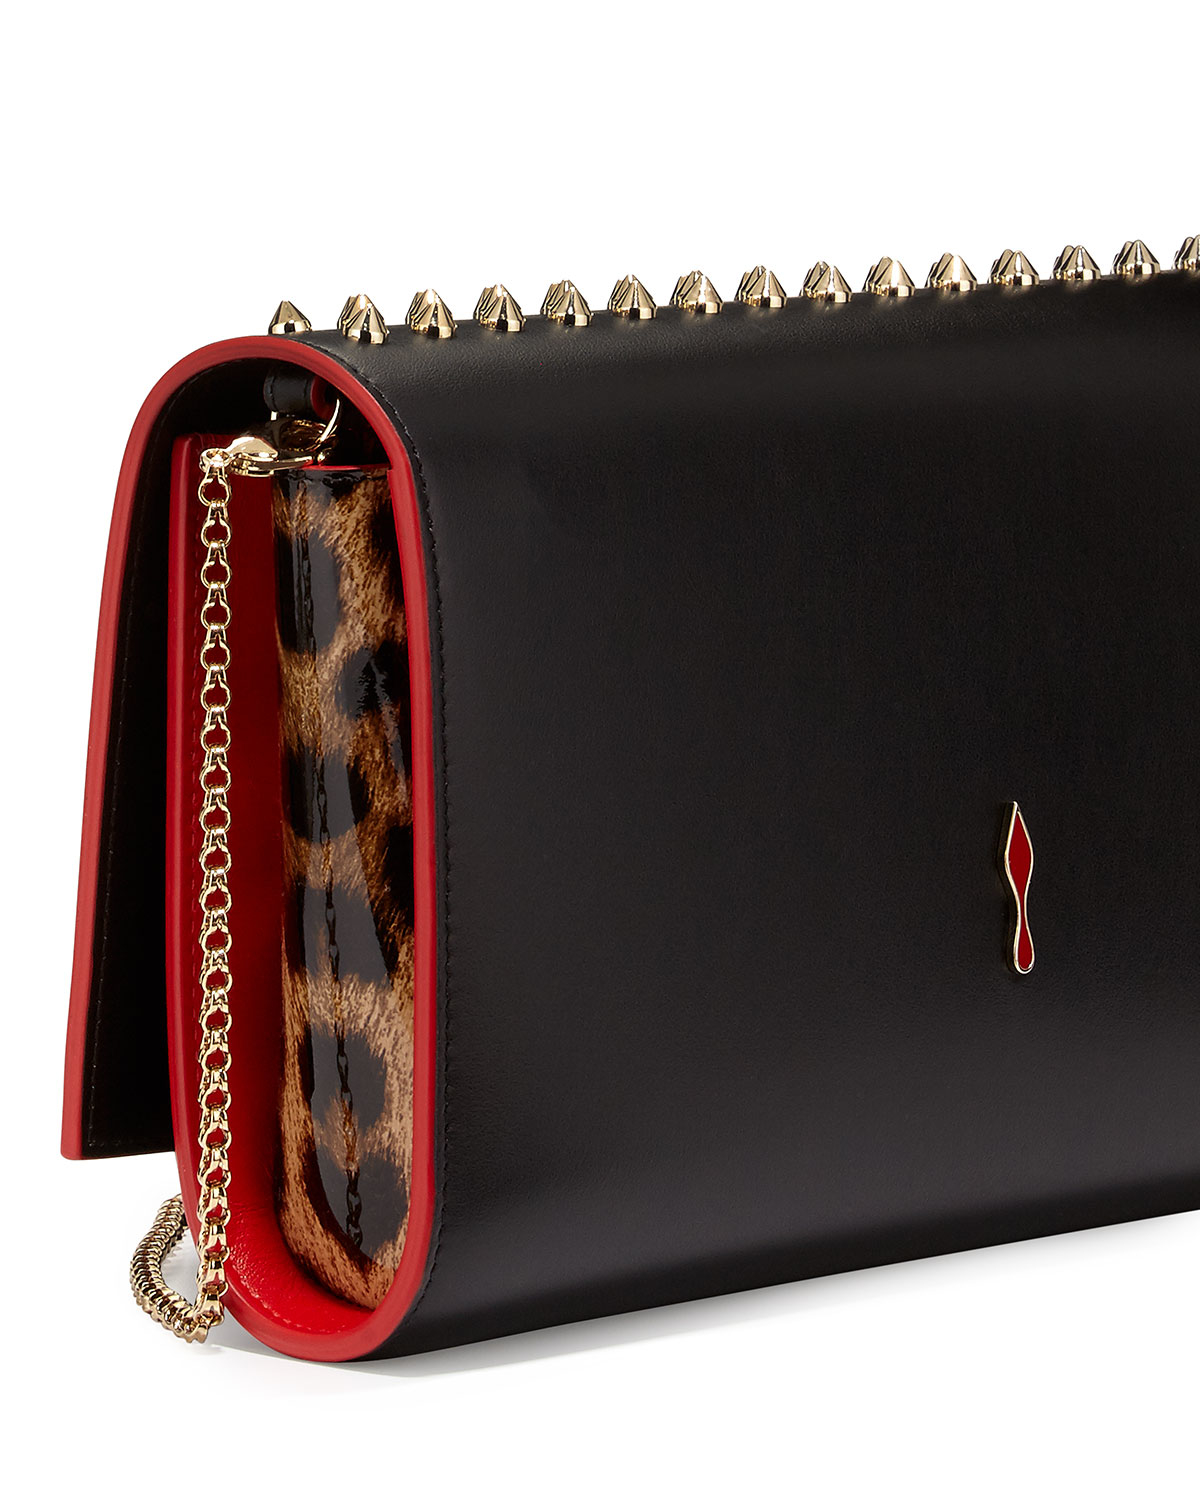 Christian louboutin Paloma Fold-over Spike Clutch Bag in ...